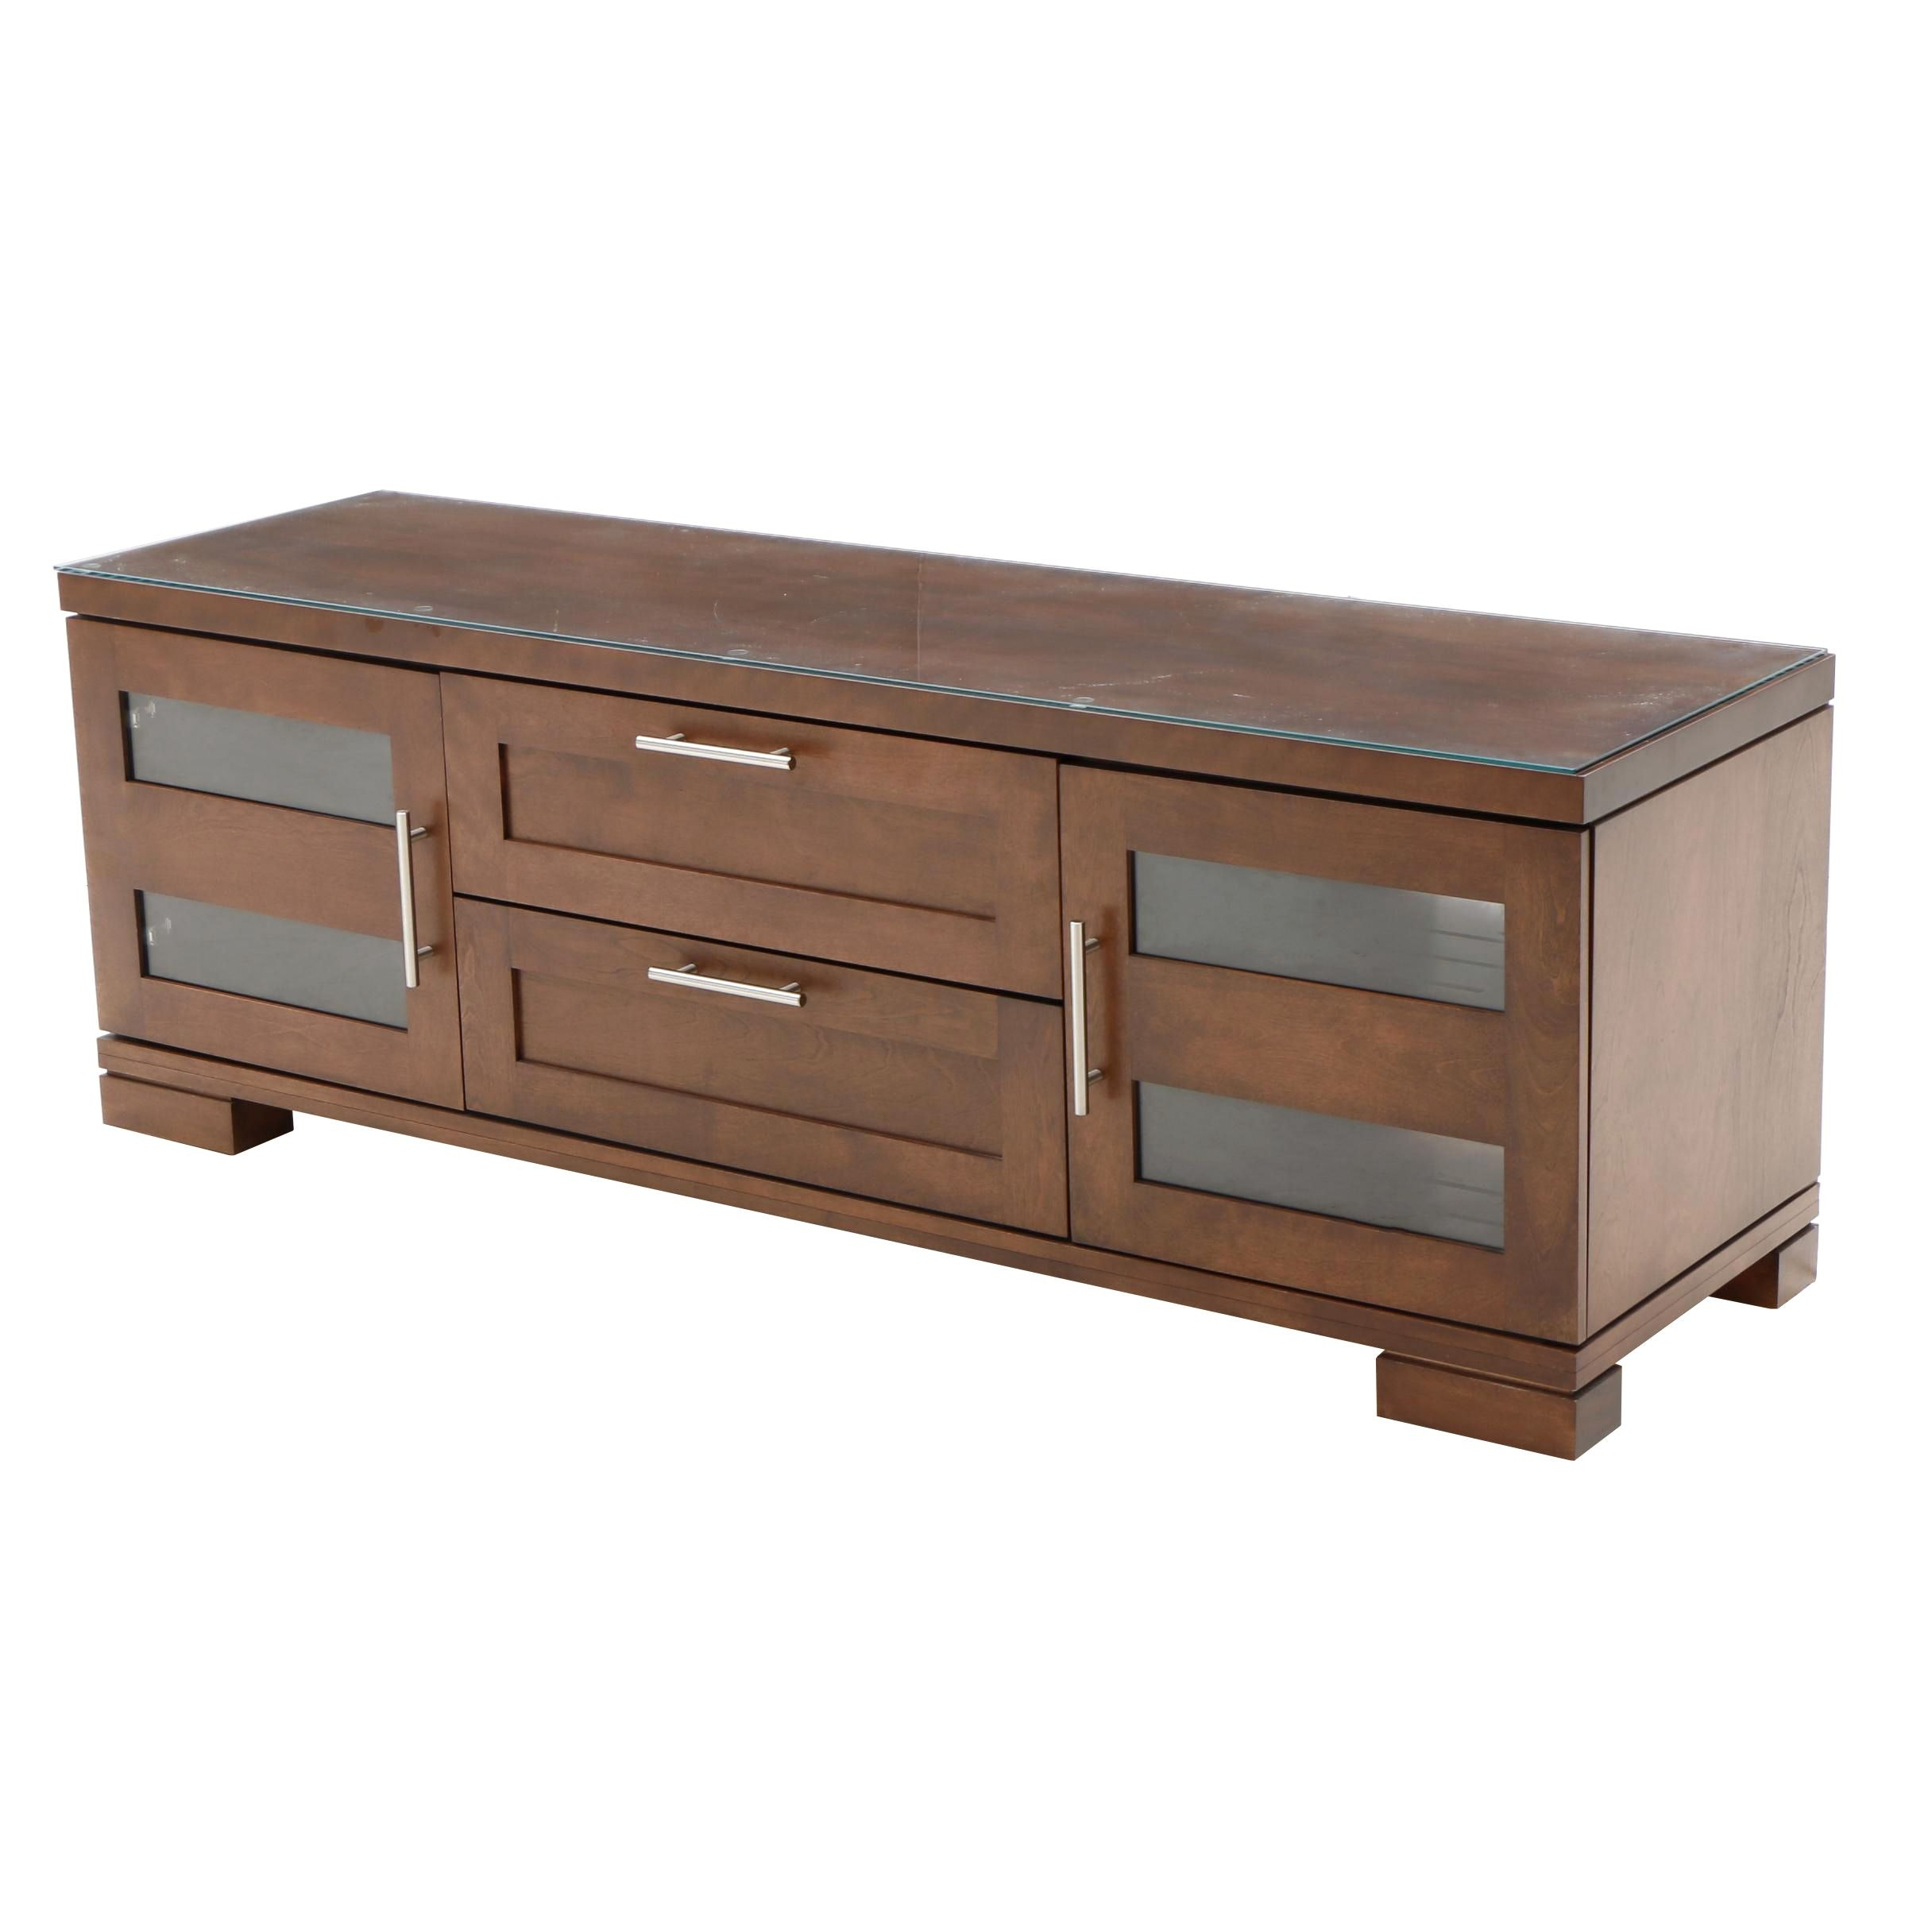 Contemporary Walnut Sideboard by Dinec